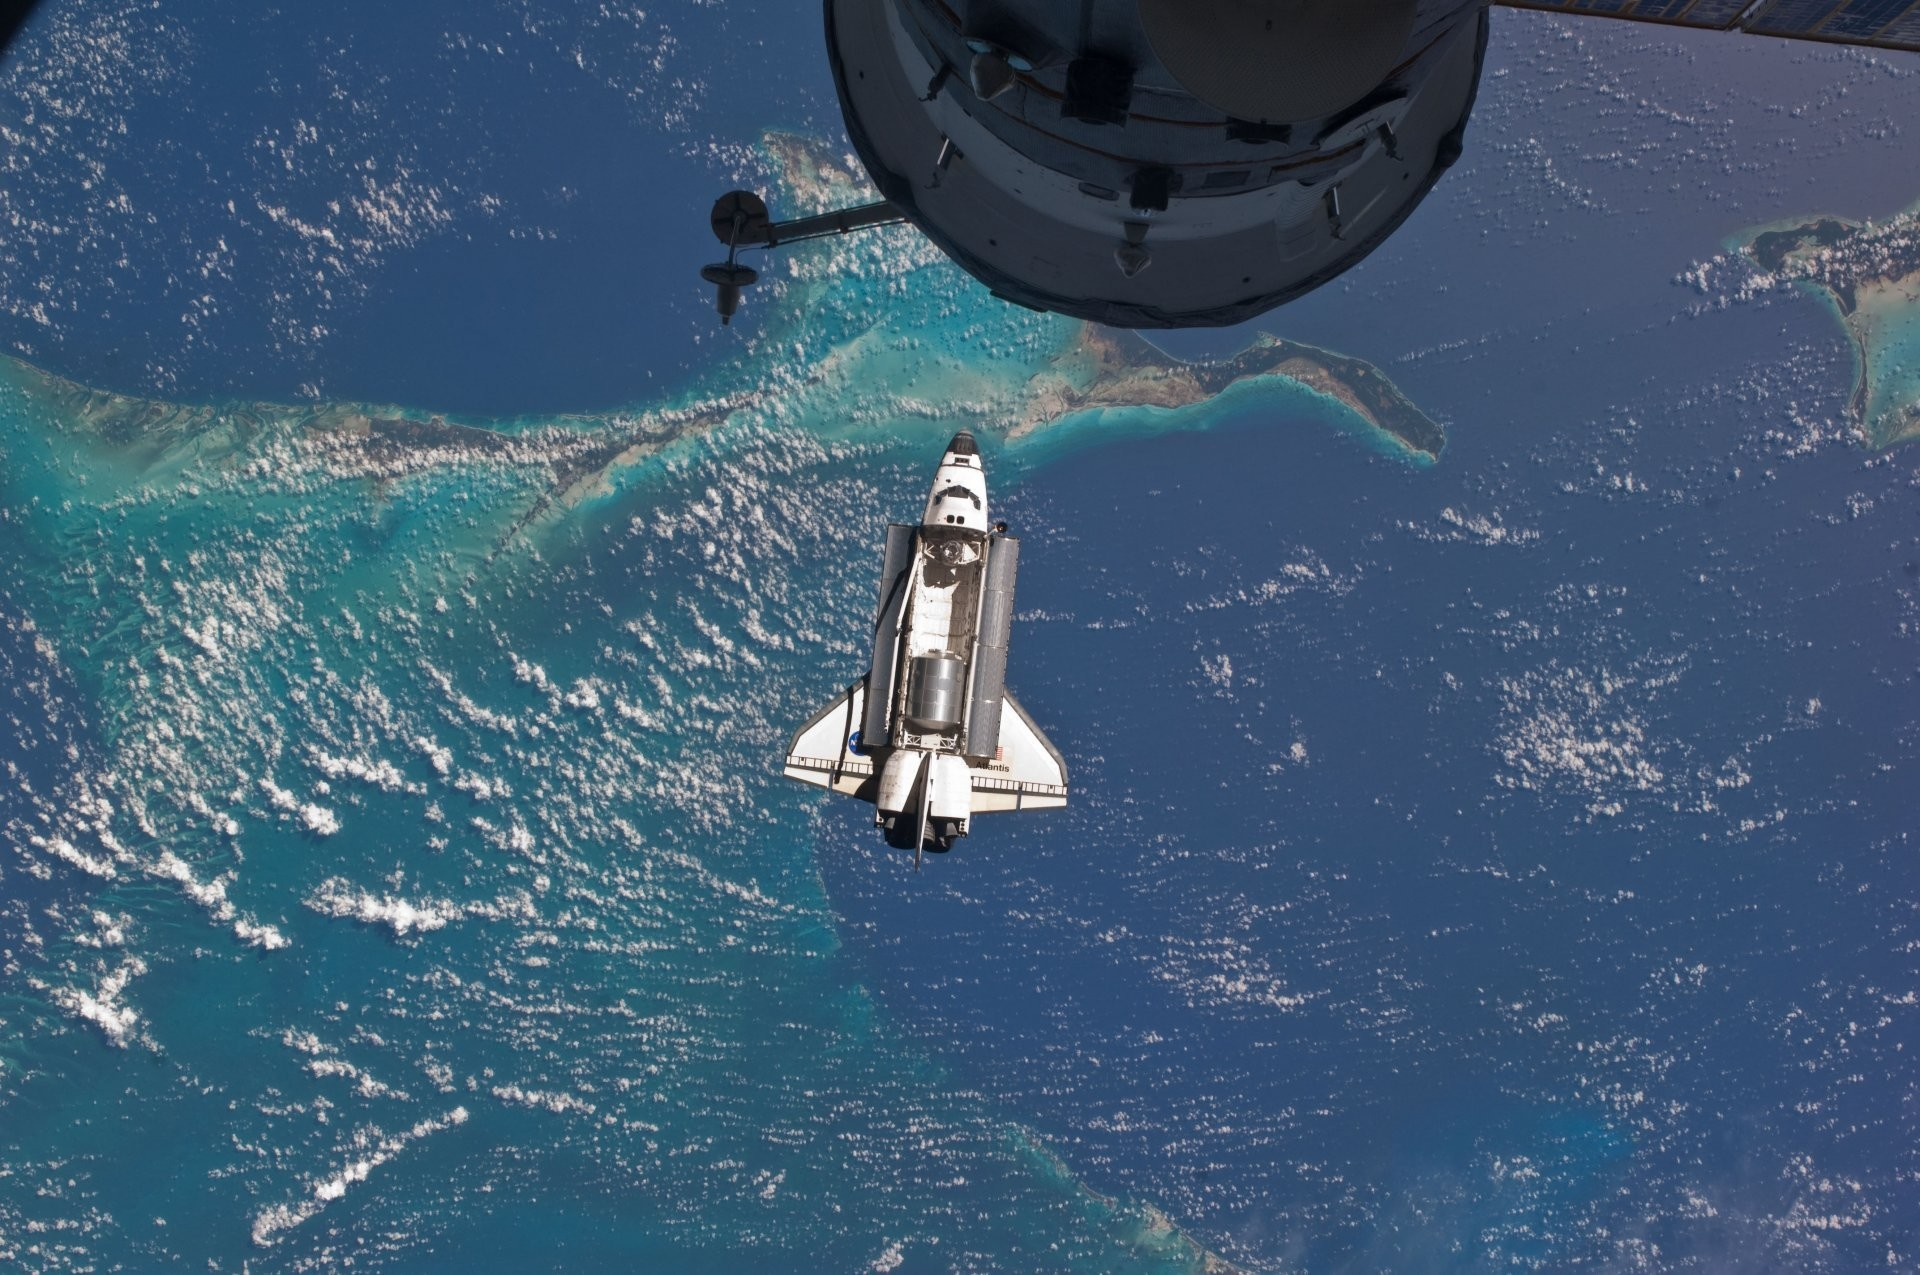 1920x1275 space shuttle atlantis last flight nasa iss international space station  atlantis space